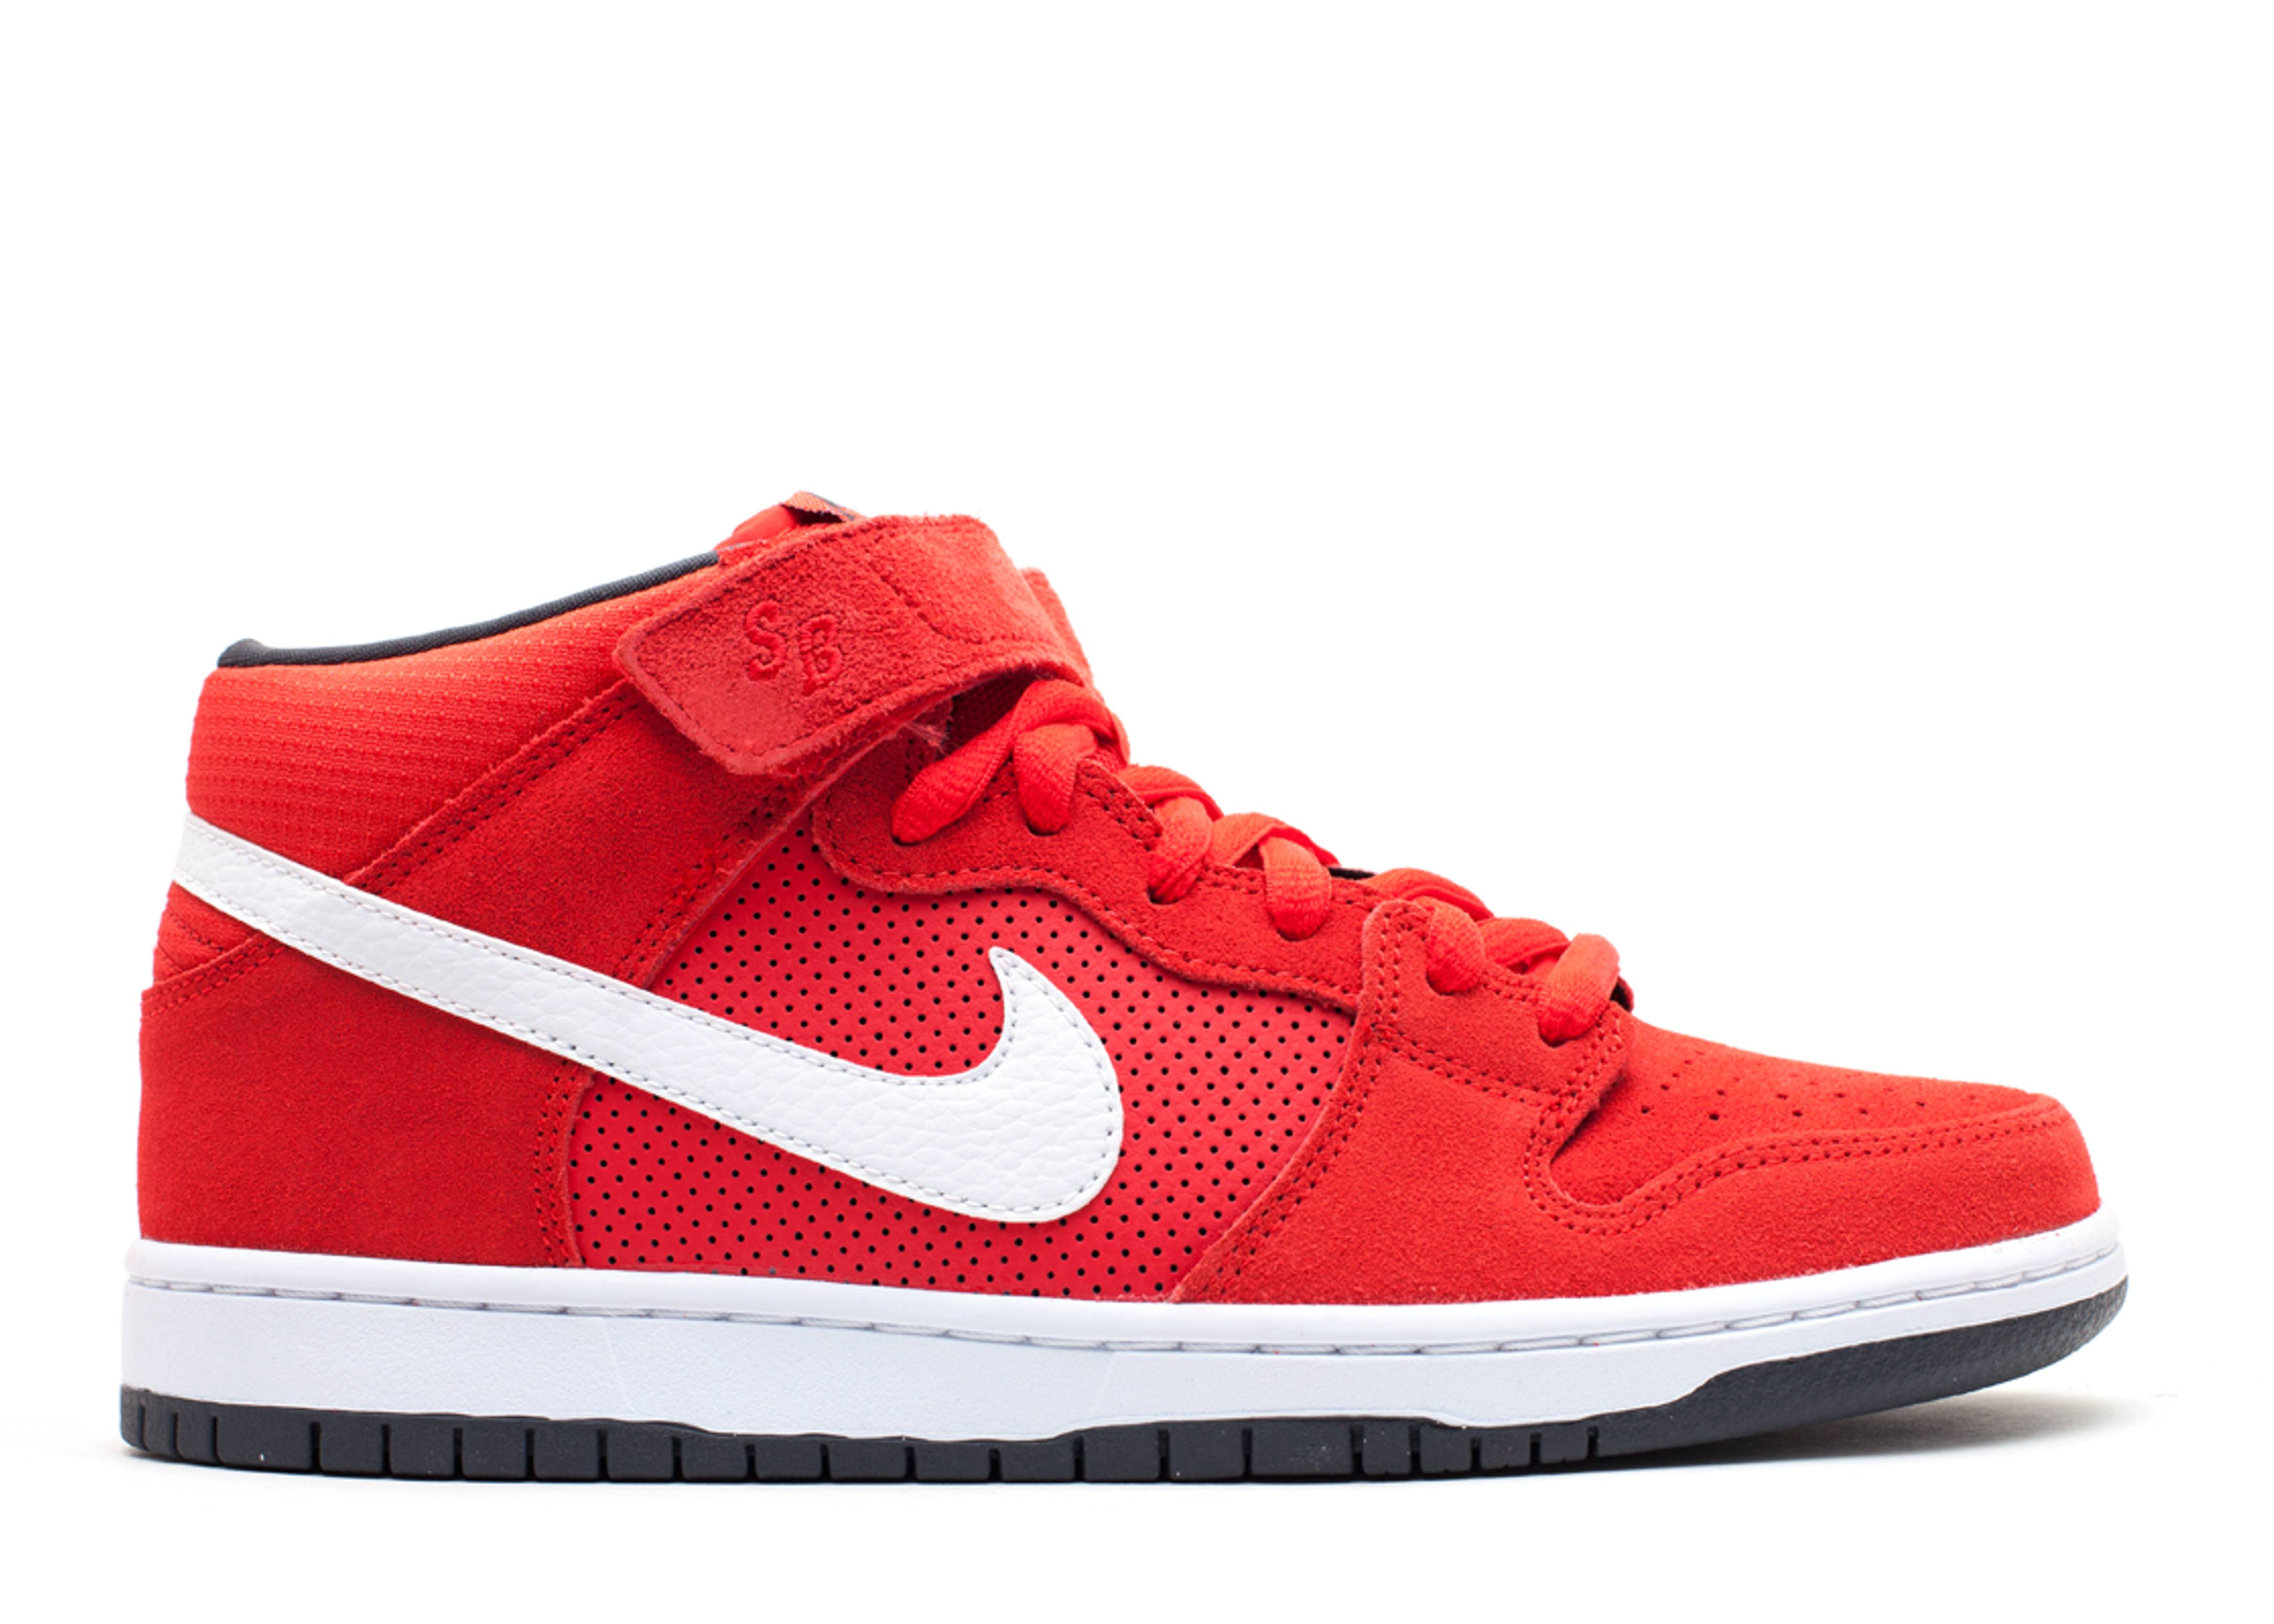 Dunk Mid Pro Sb - Nike - 314383 610 - hyper red/white-anthracite ...